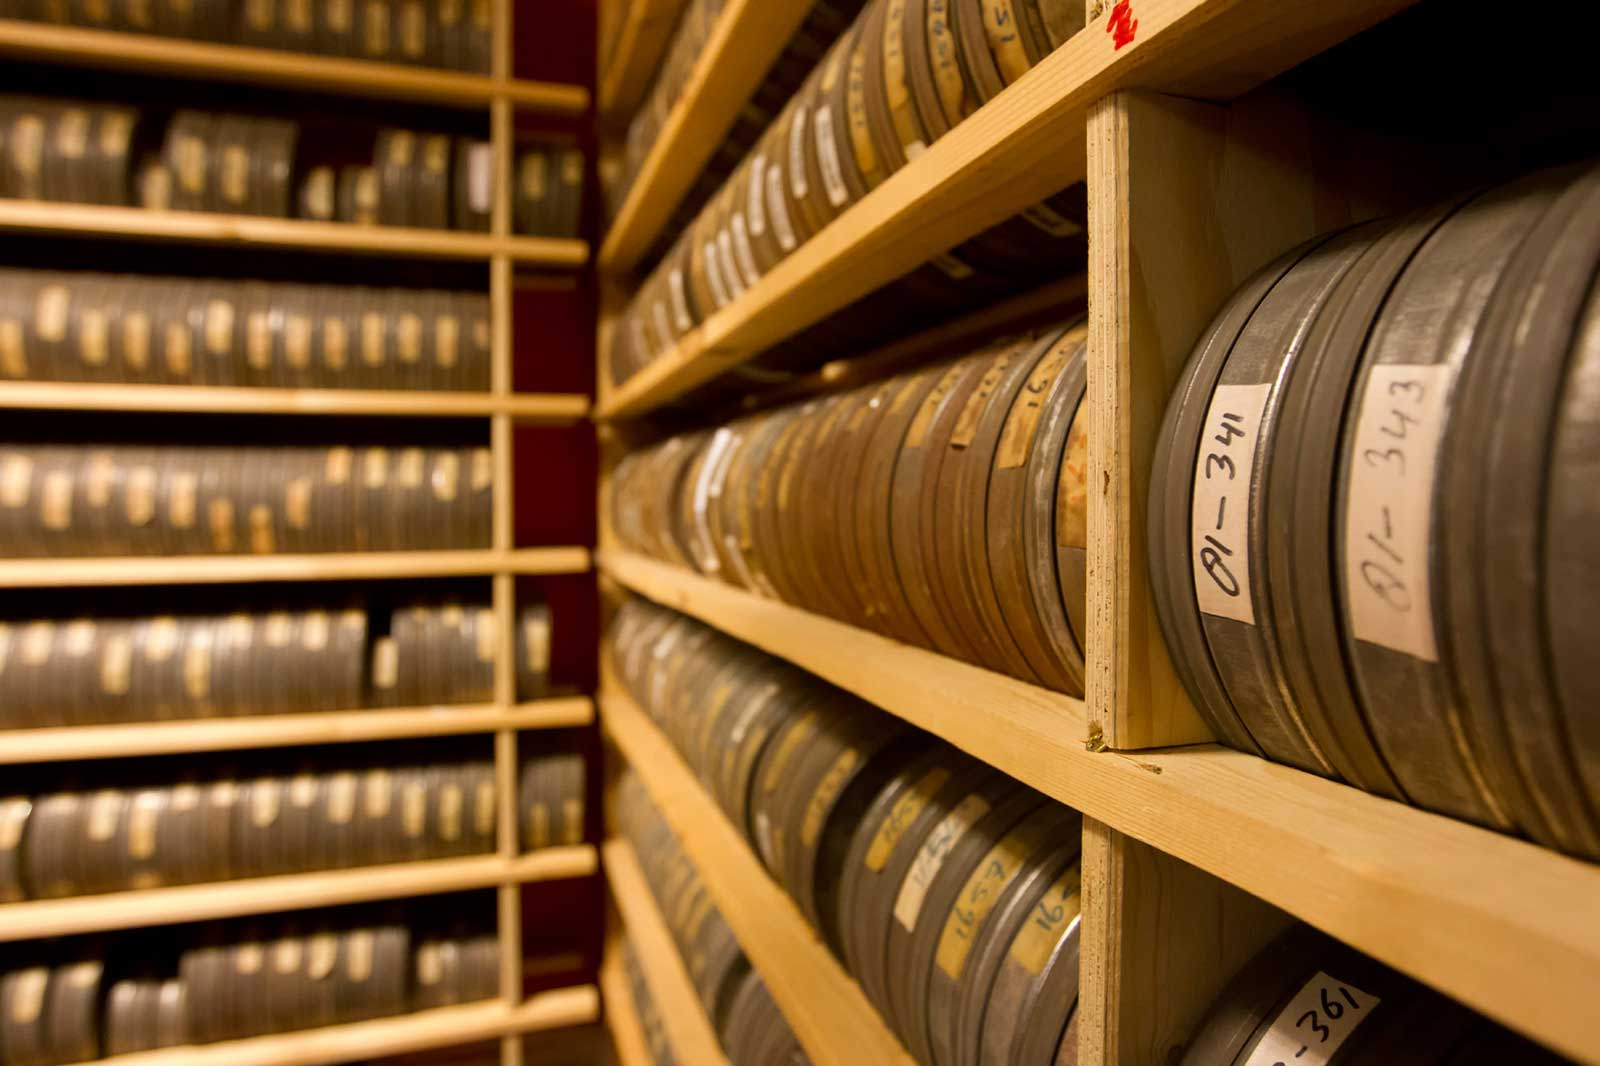 commercial productions banner - room full of film reels